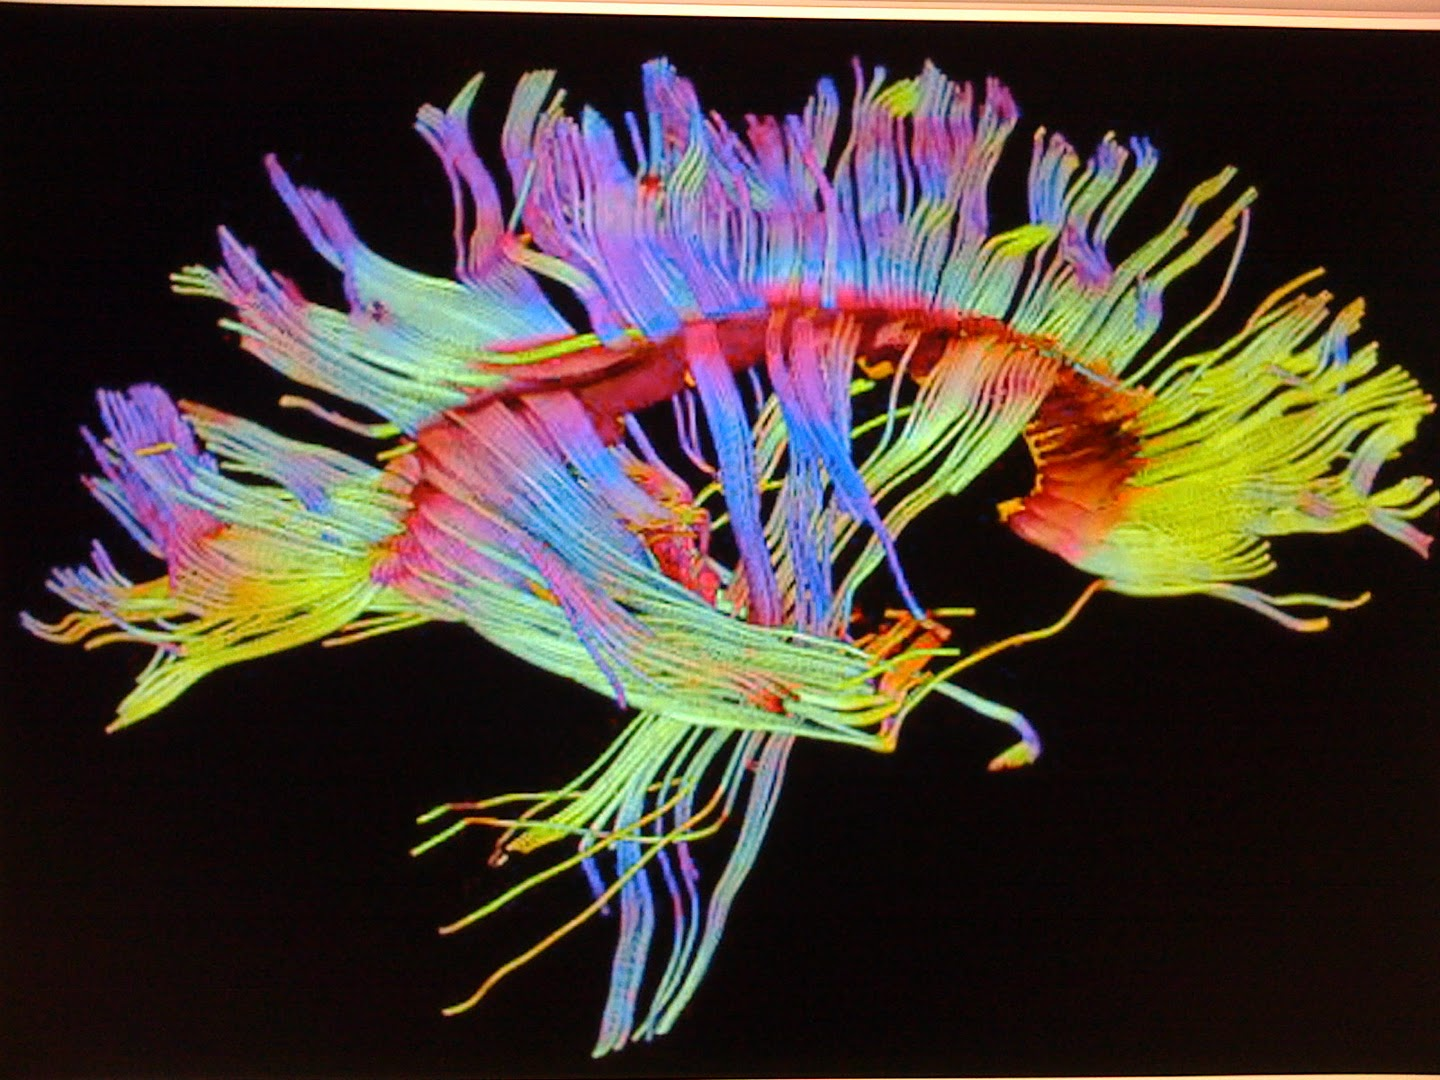 Diffusion Tensor Tractography of Human Brain, 2007. Aaron Filler was the lead inventor on the project that led to the development of DTI (diffusion tensor imaging).